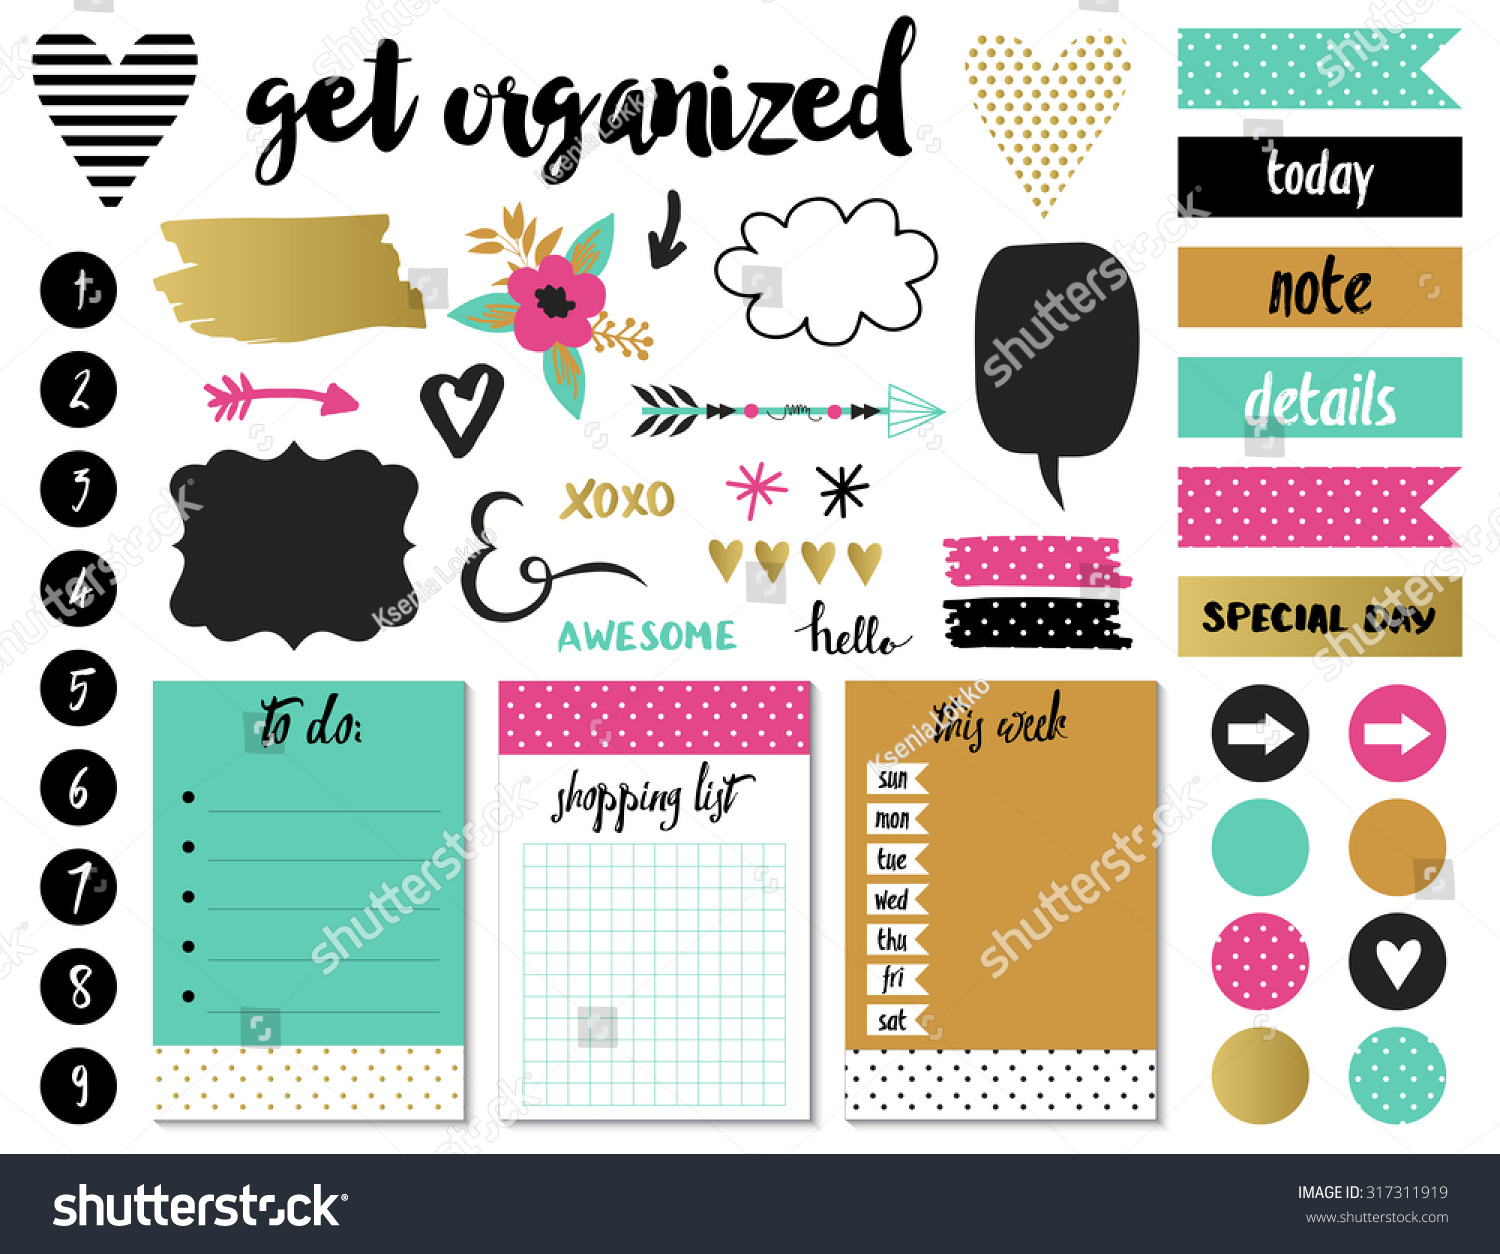 Signs And Symbols For Organized Your Planner Template For